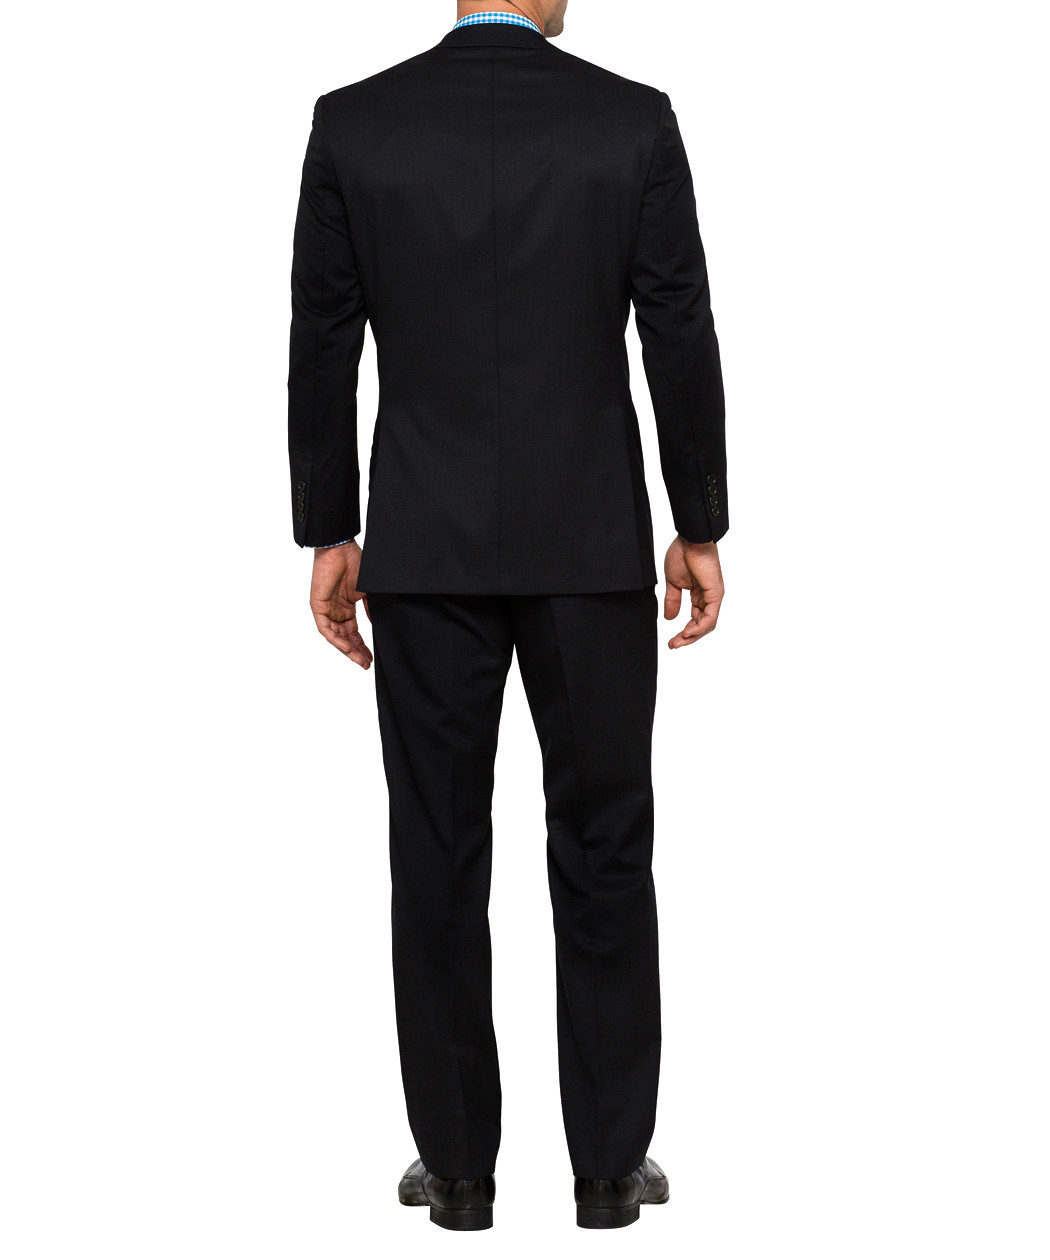 business casual online shopping photo - 1